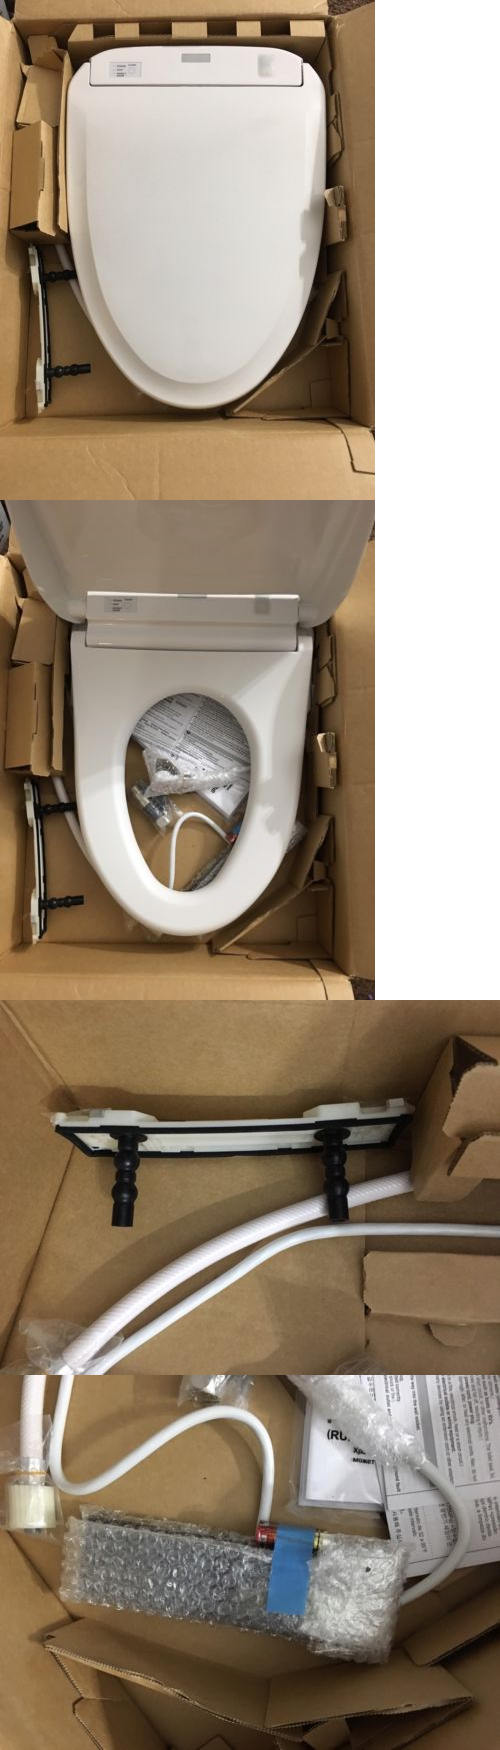 Bidets and Toilet Attachments 101405: Toto Washlet S300e -> BUY IT ...